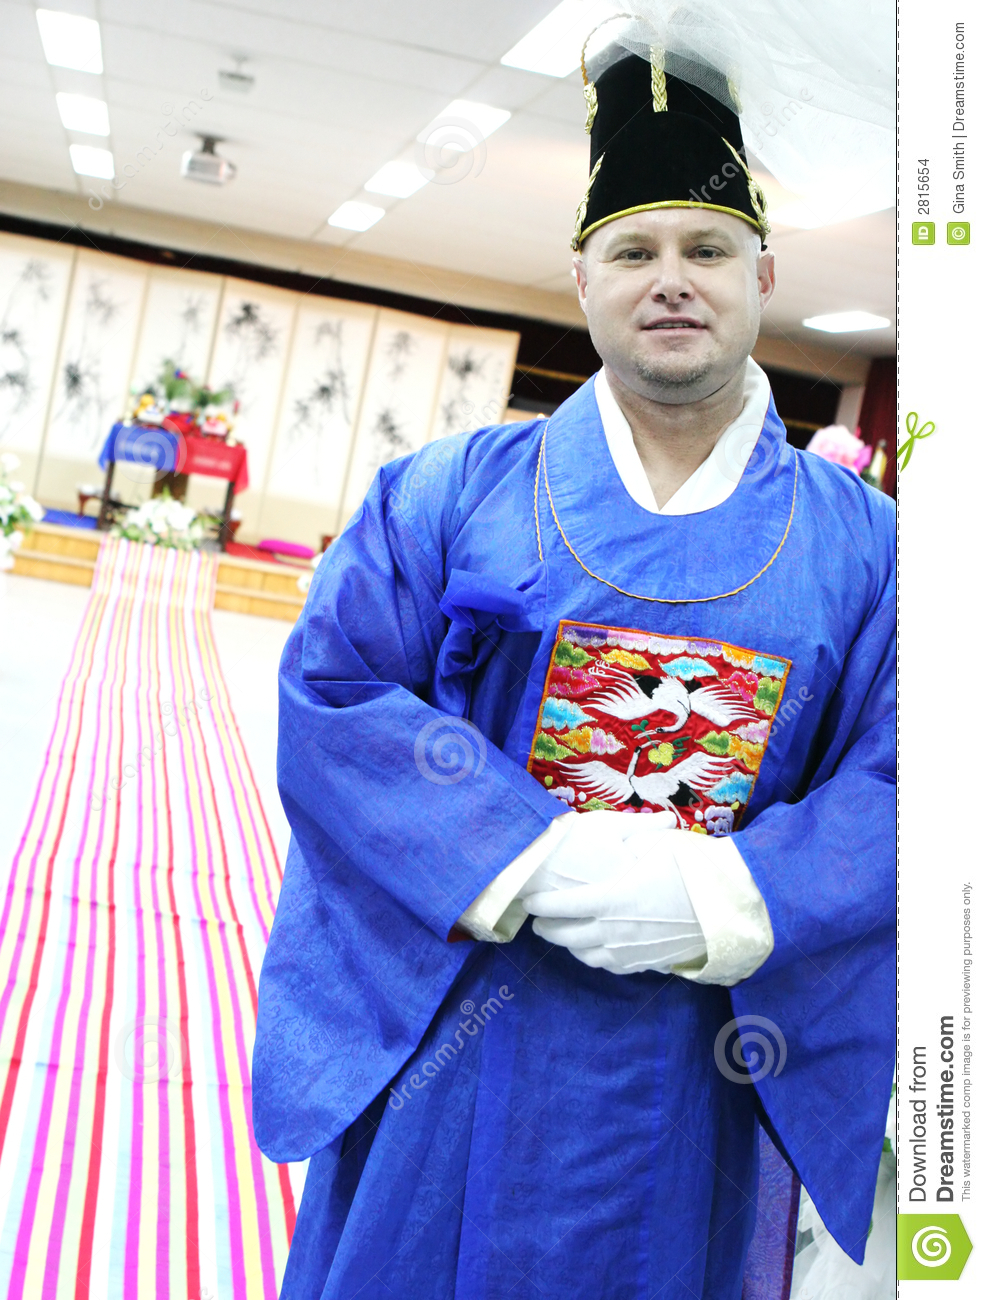 b8c4421d6de7 Foreigner prepares to marry a Korean woman in a traditional ceremony.